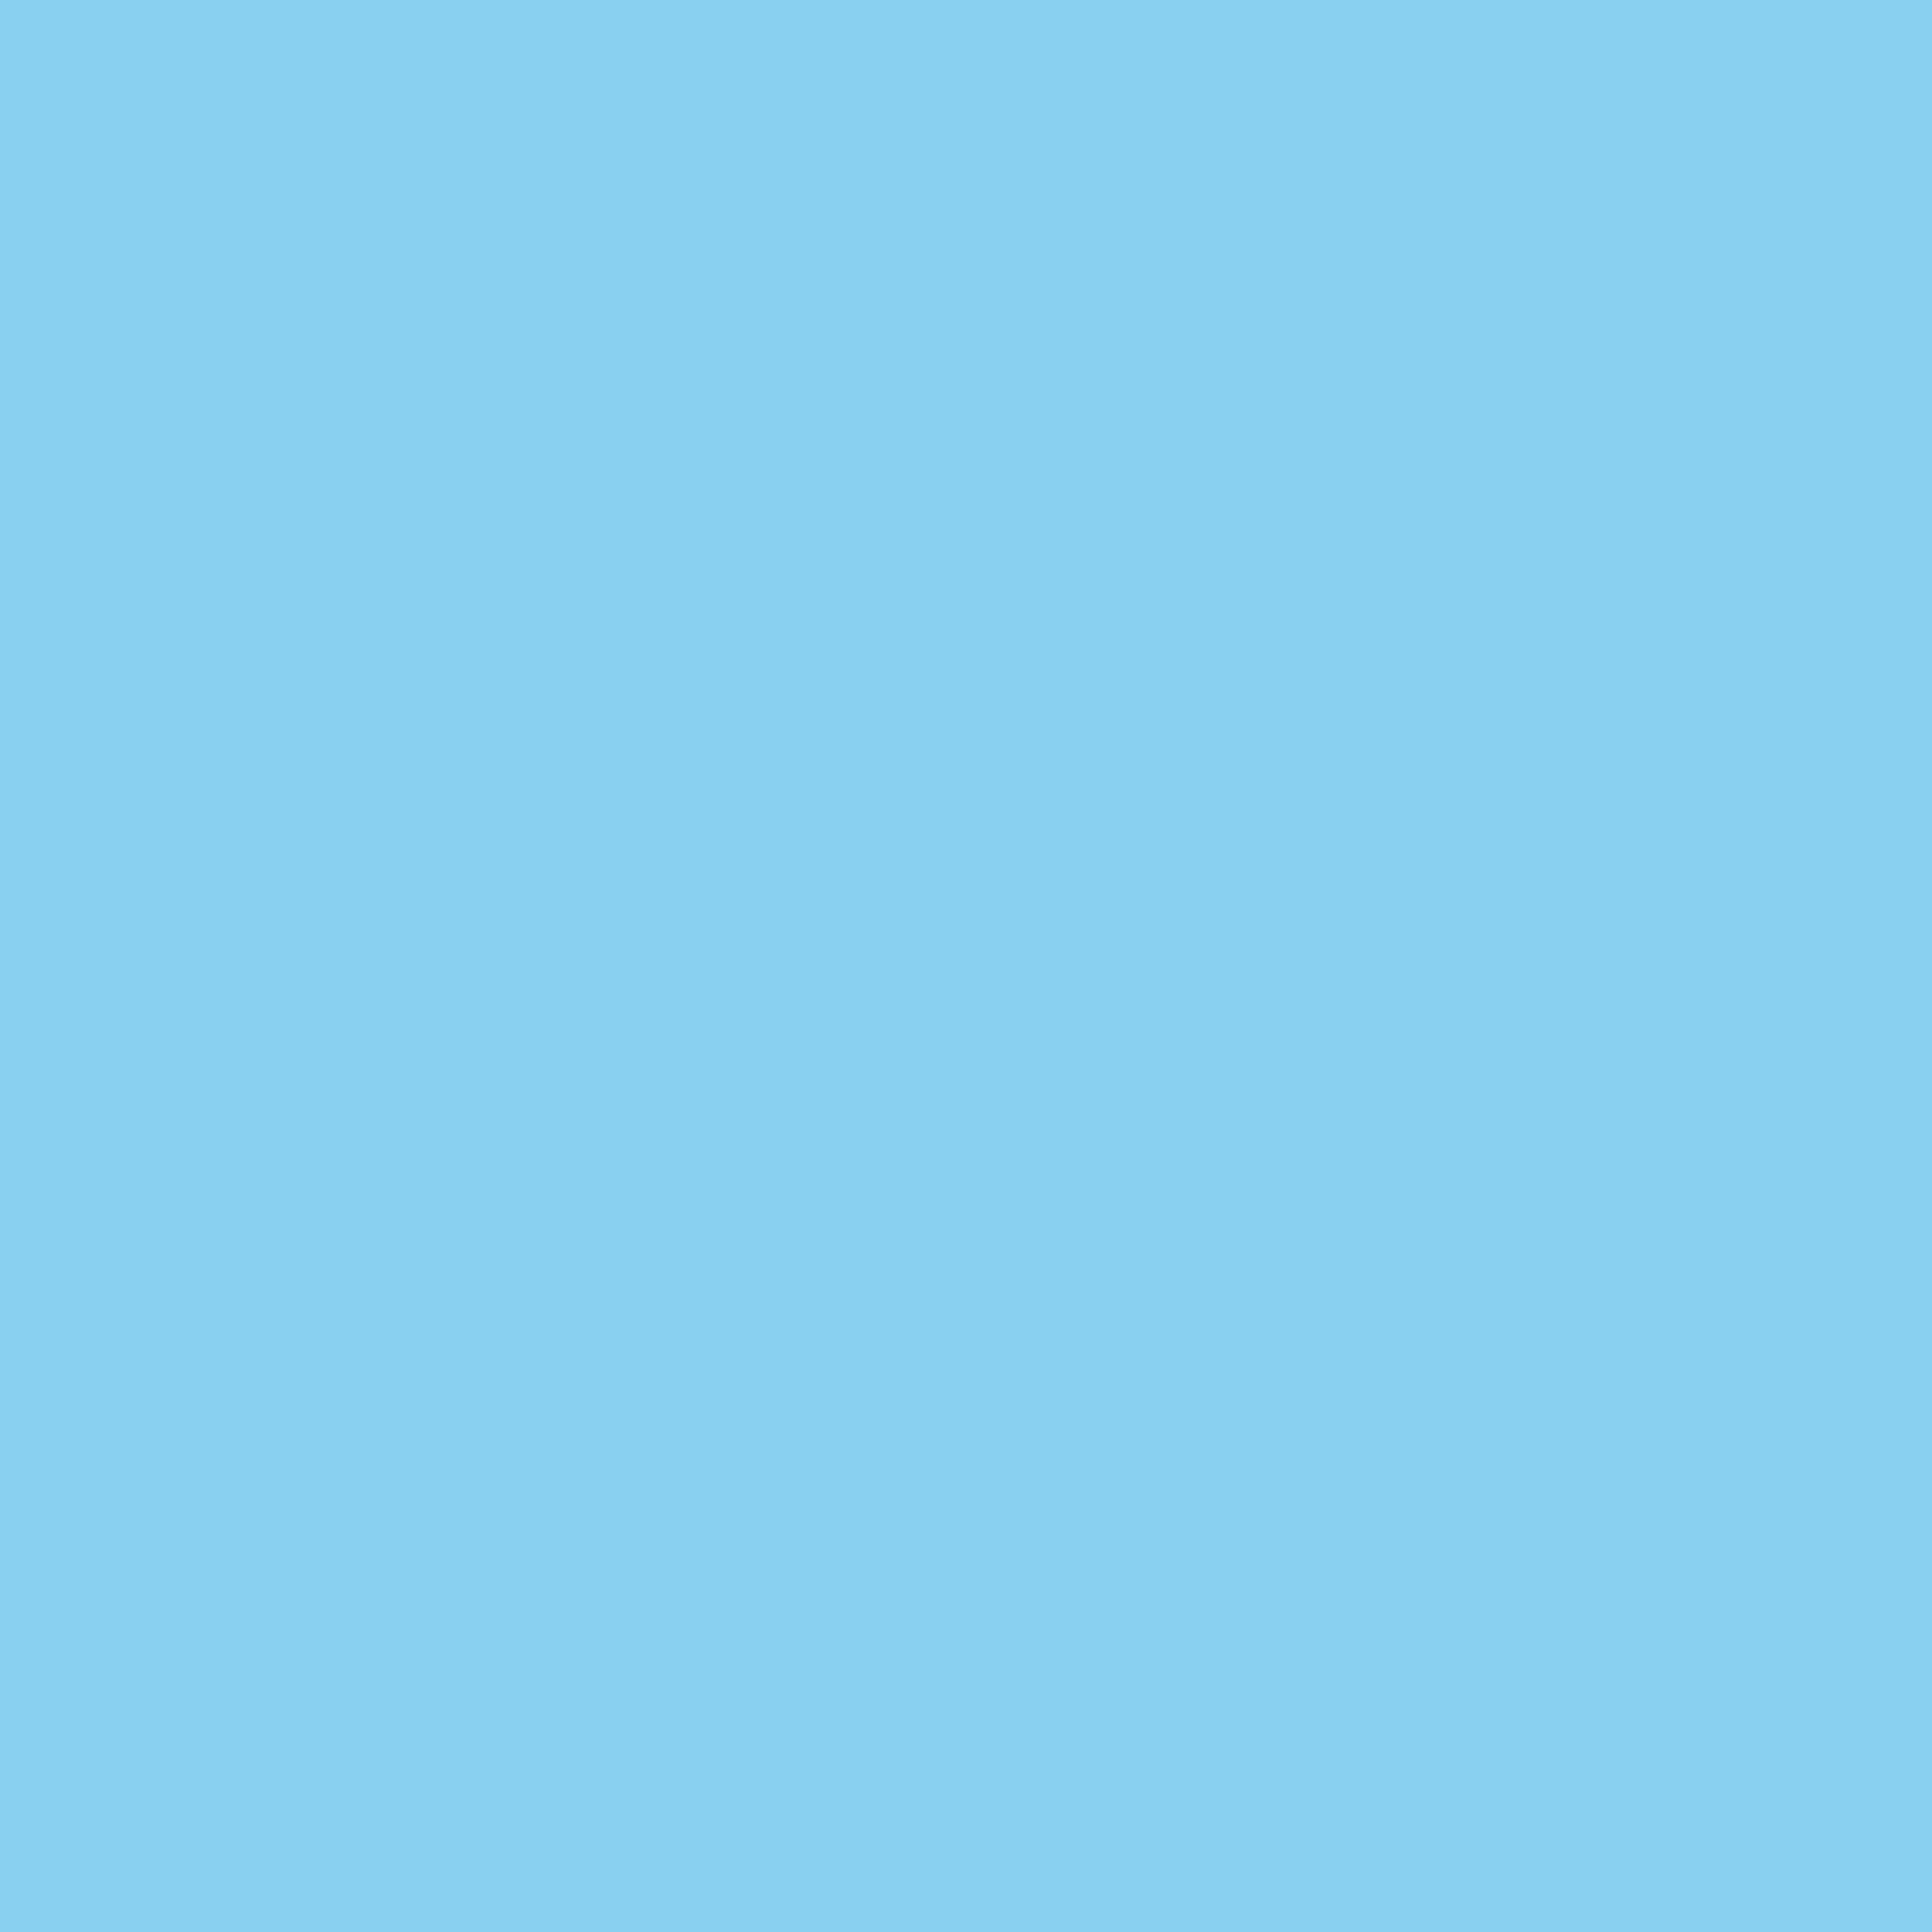 2732x2732 Baby Blue Solid Color Background